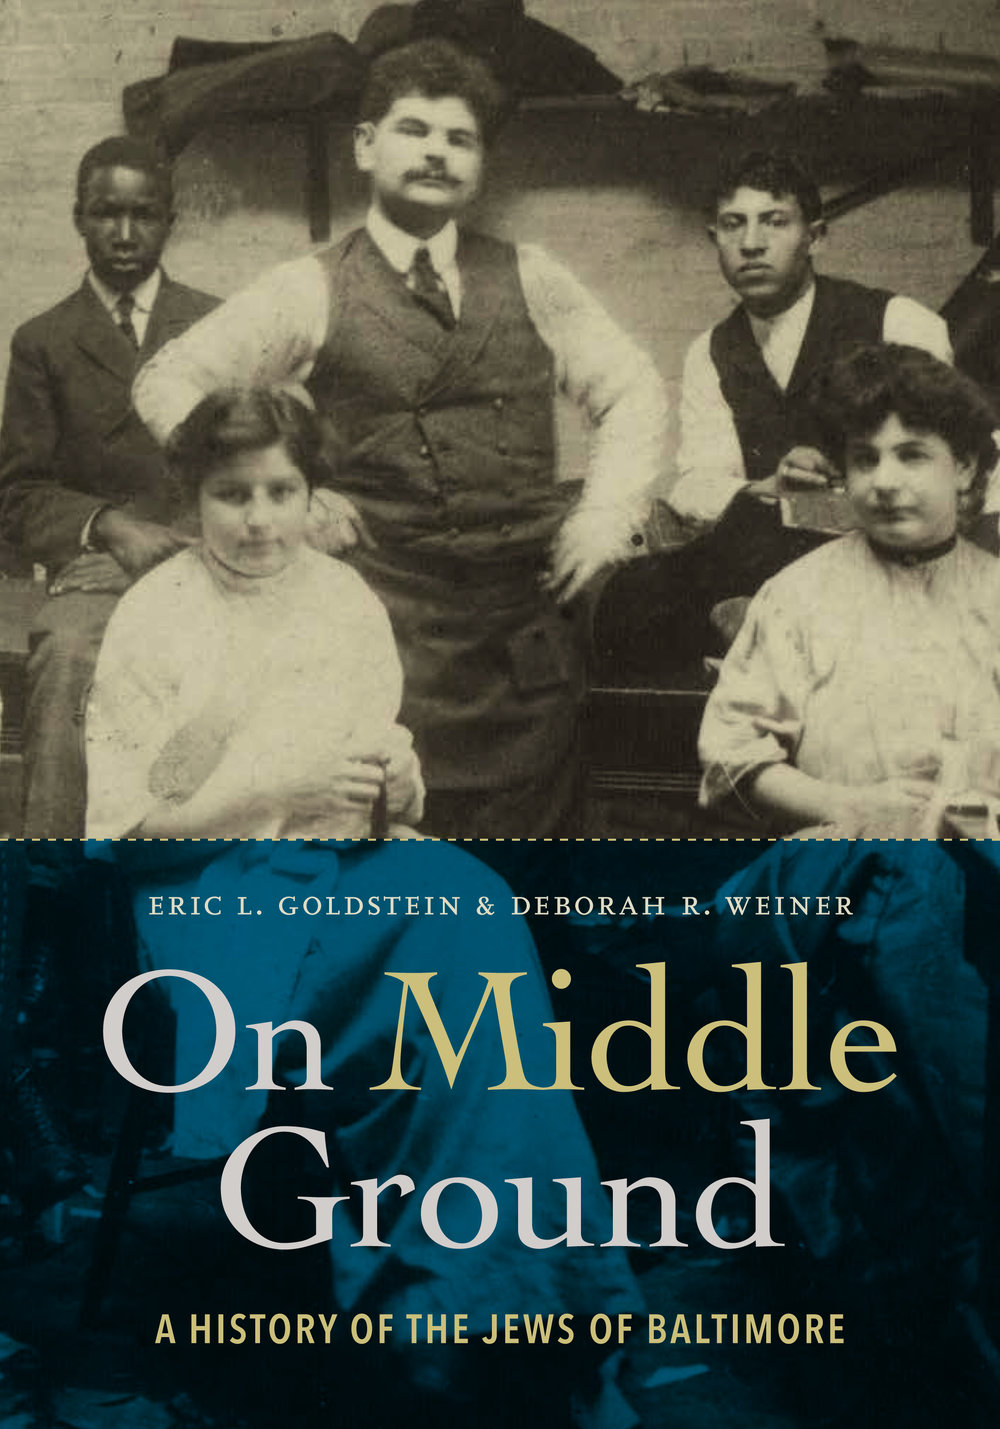 In some ways a history of American Jews in microcosm, On Middle Ground  also reveals how Baltimore's position between North and South profoundly shaped Jewish life. Not just a Jewish story, the book  illuminates both Baltimore and its Jews, showing how each influenced the other.  FIND OUT  MORE . BUY ON  AMAZON .